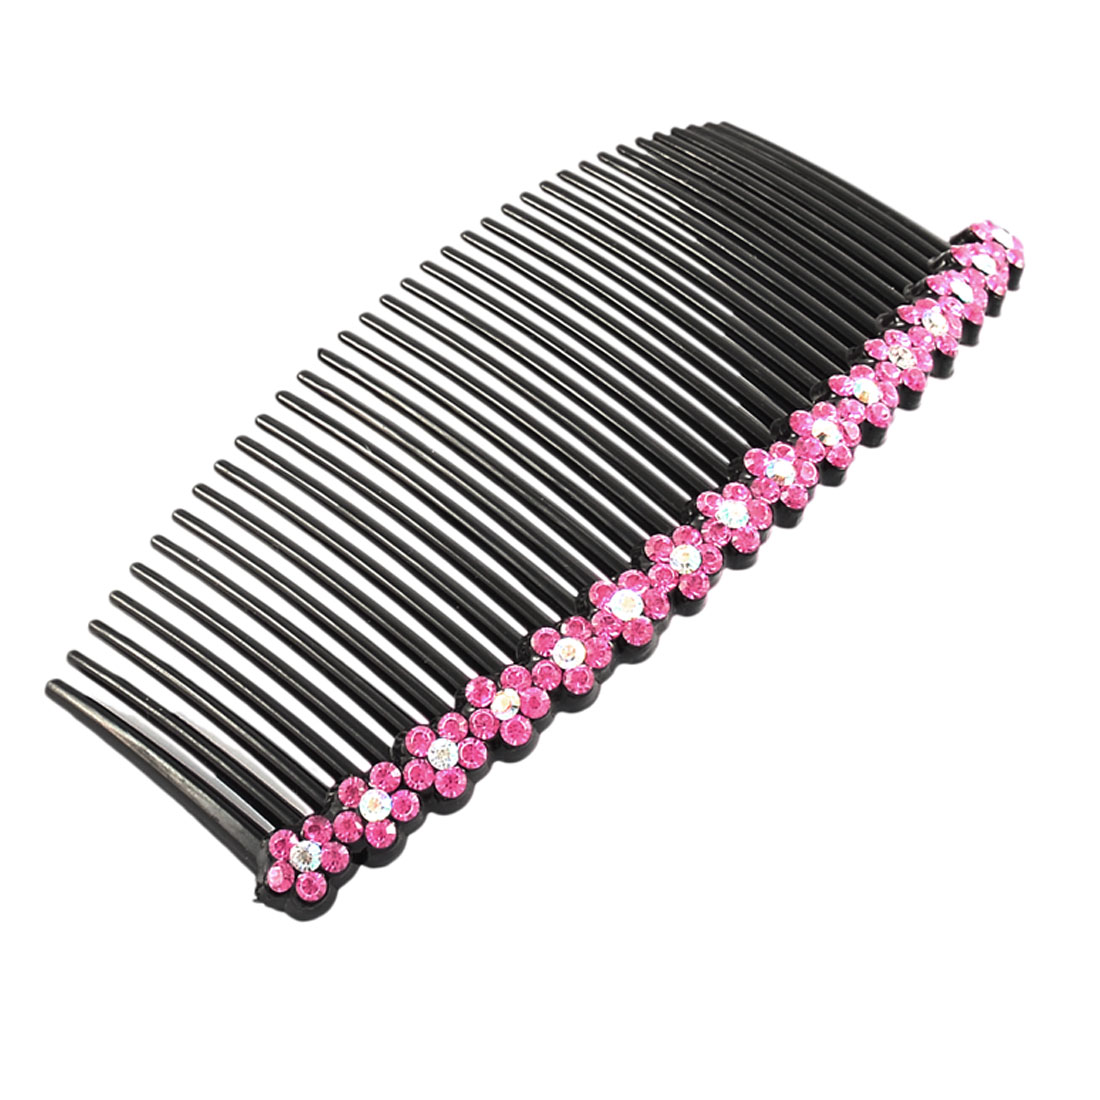 Hairdress Plastic Flower Shaped Rhinestone Decor 35 Teeth Hair Clip Comb Fuchsia